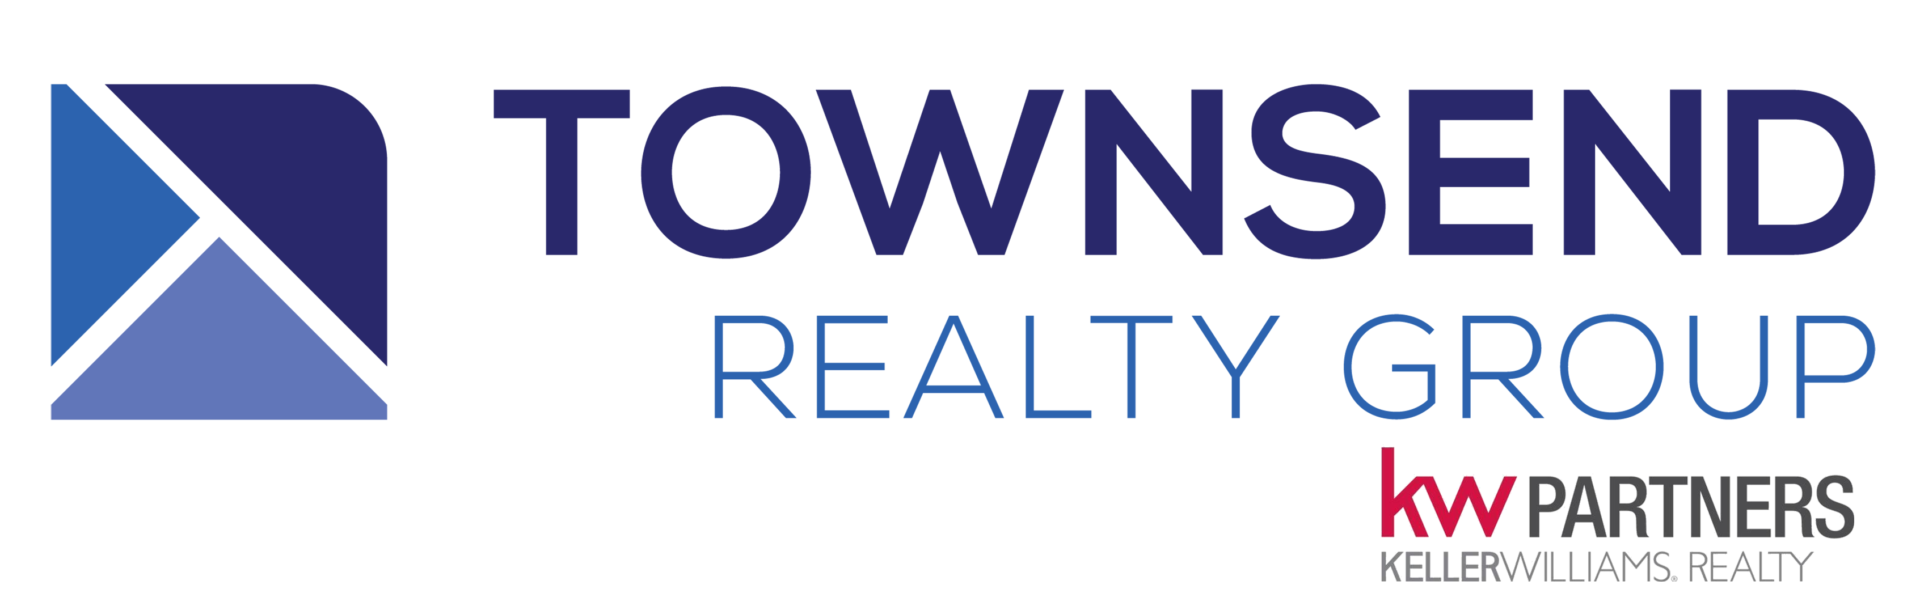 Townsend Realty Group  logo